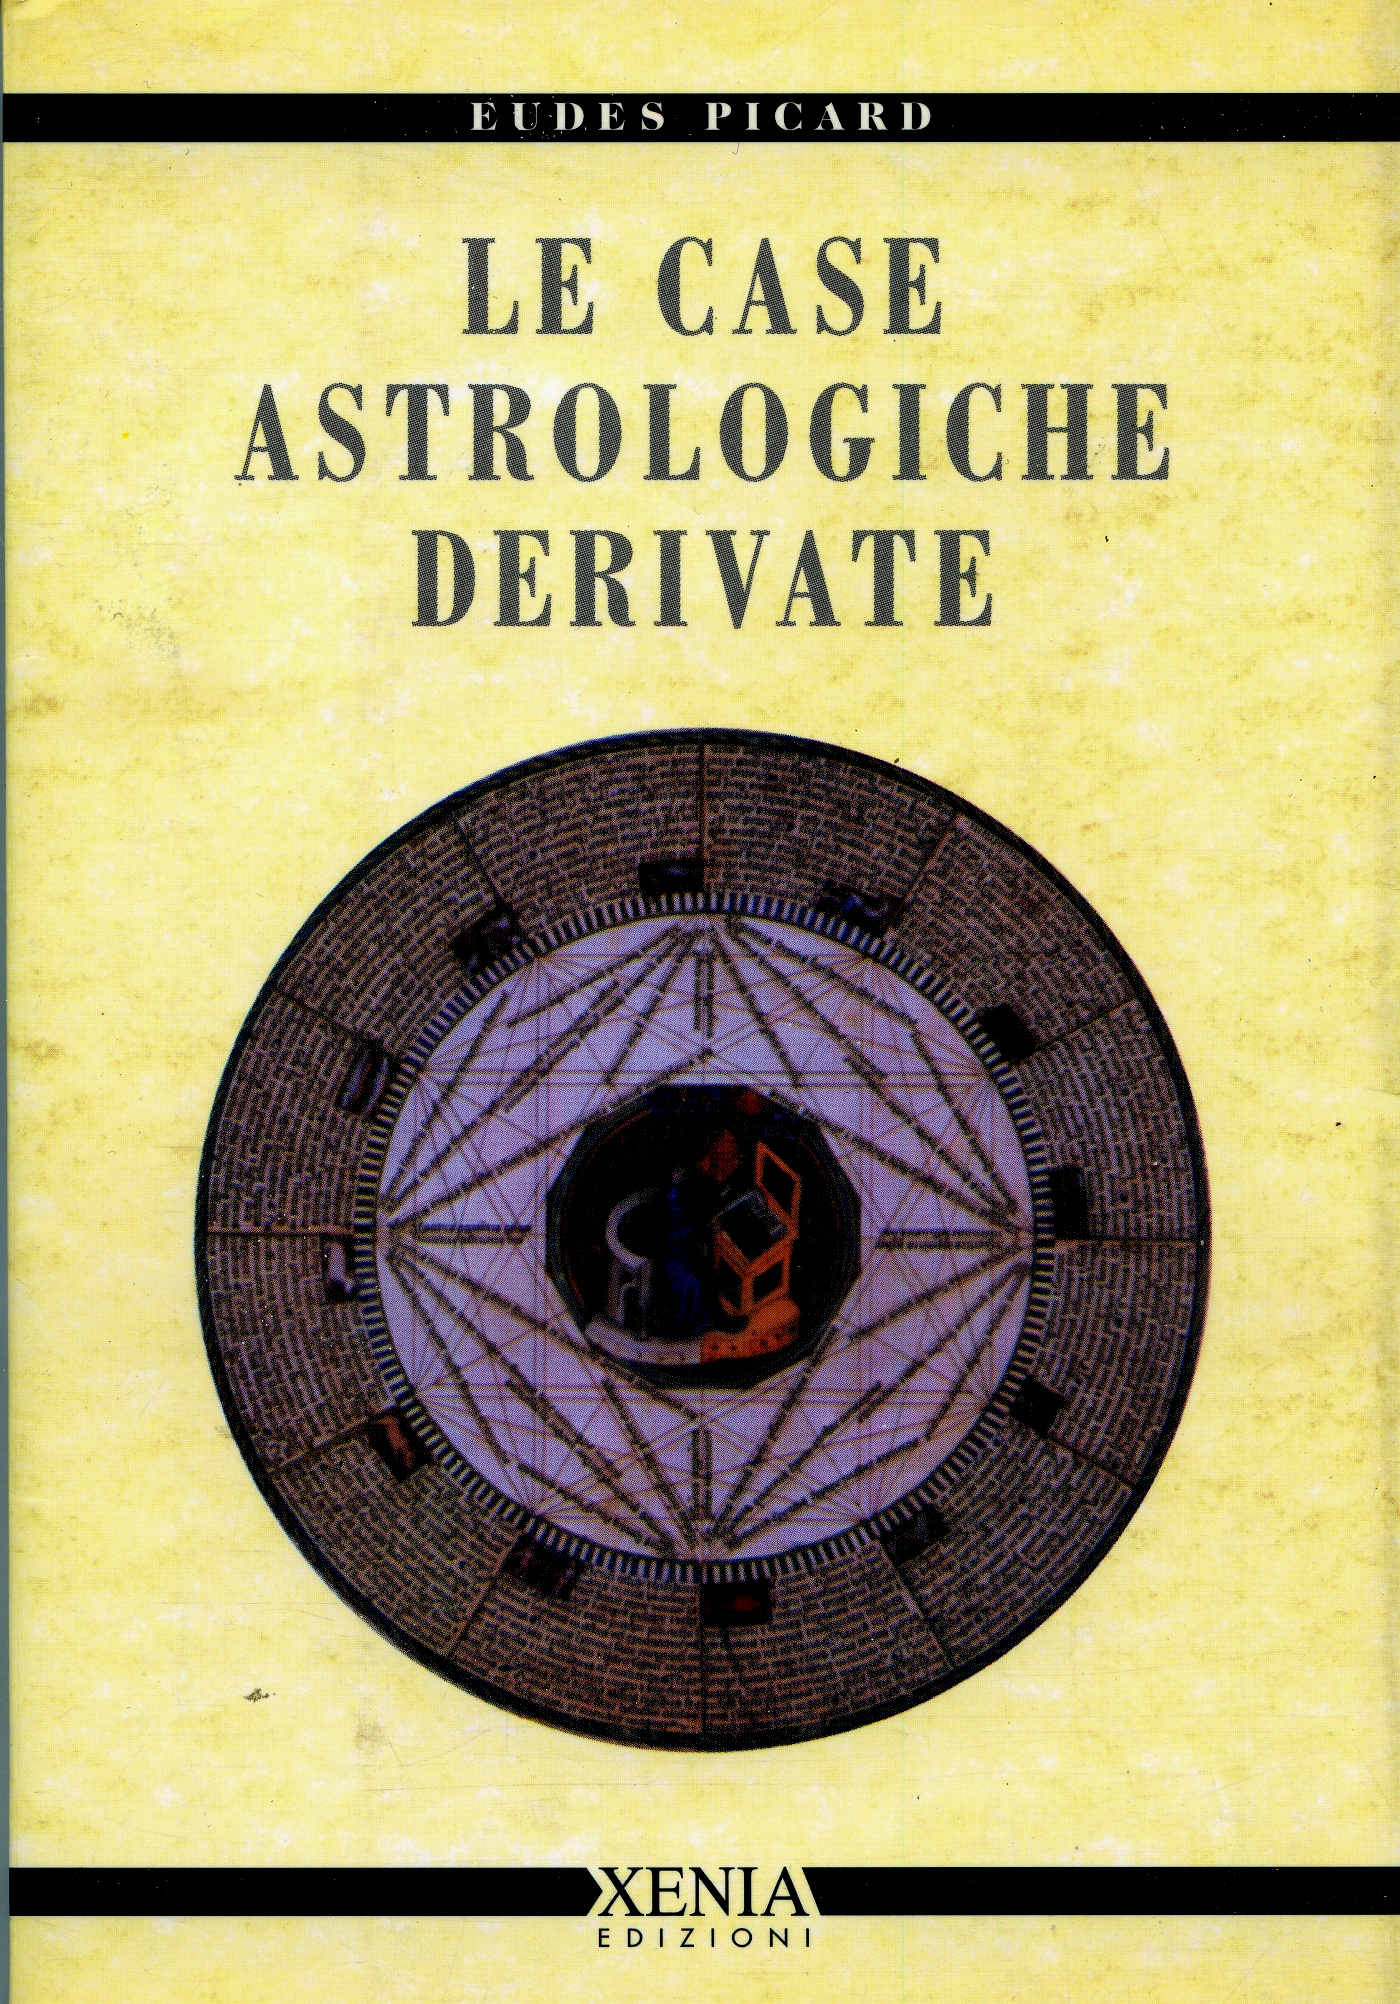 Le Case Astrologiche Derivate!